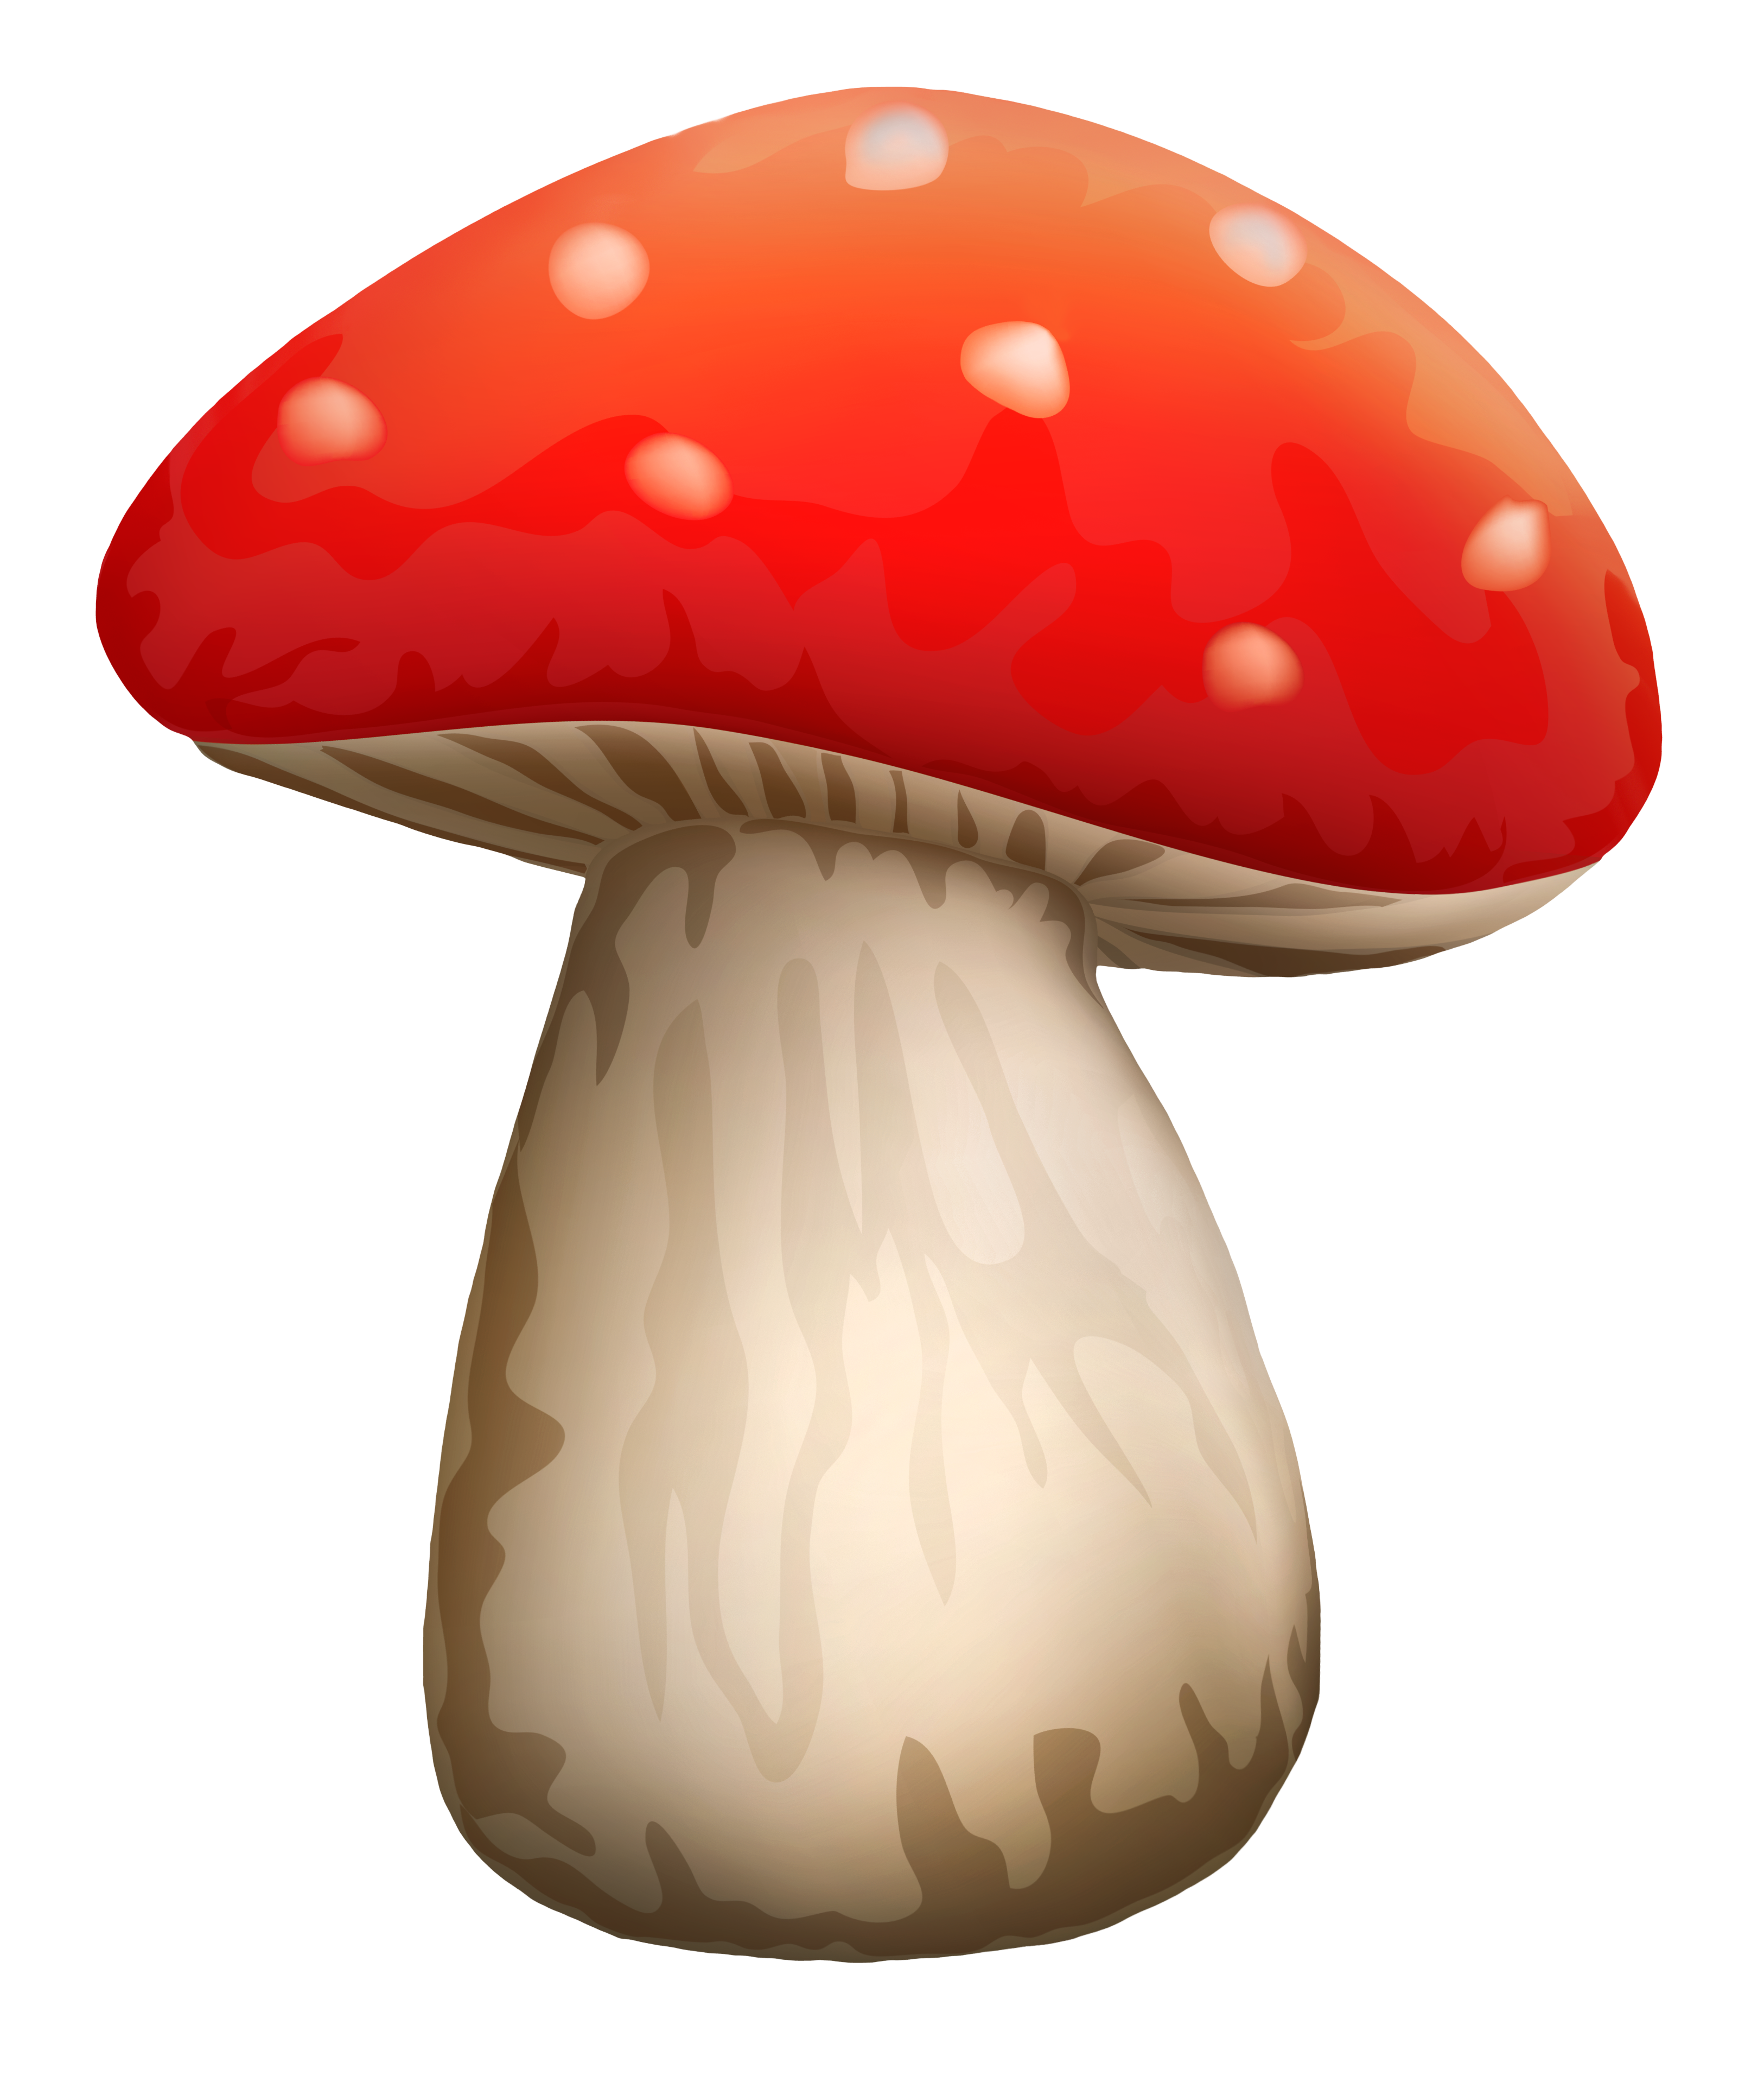 Mushroom clipart wild mushroom. Poisonous red with white